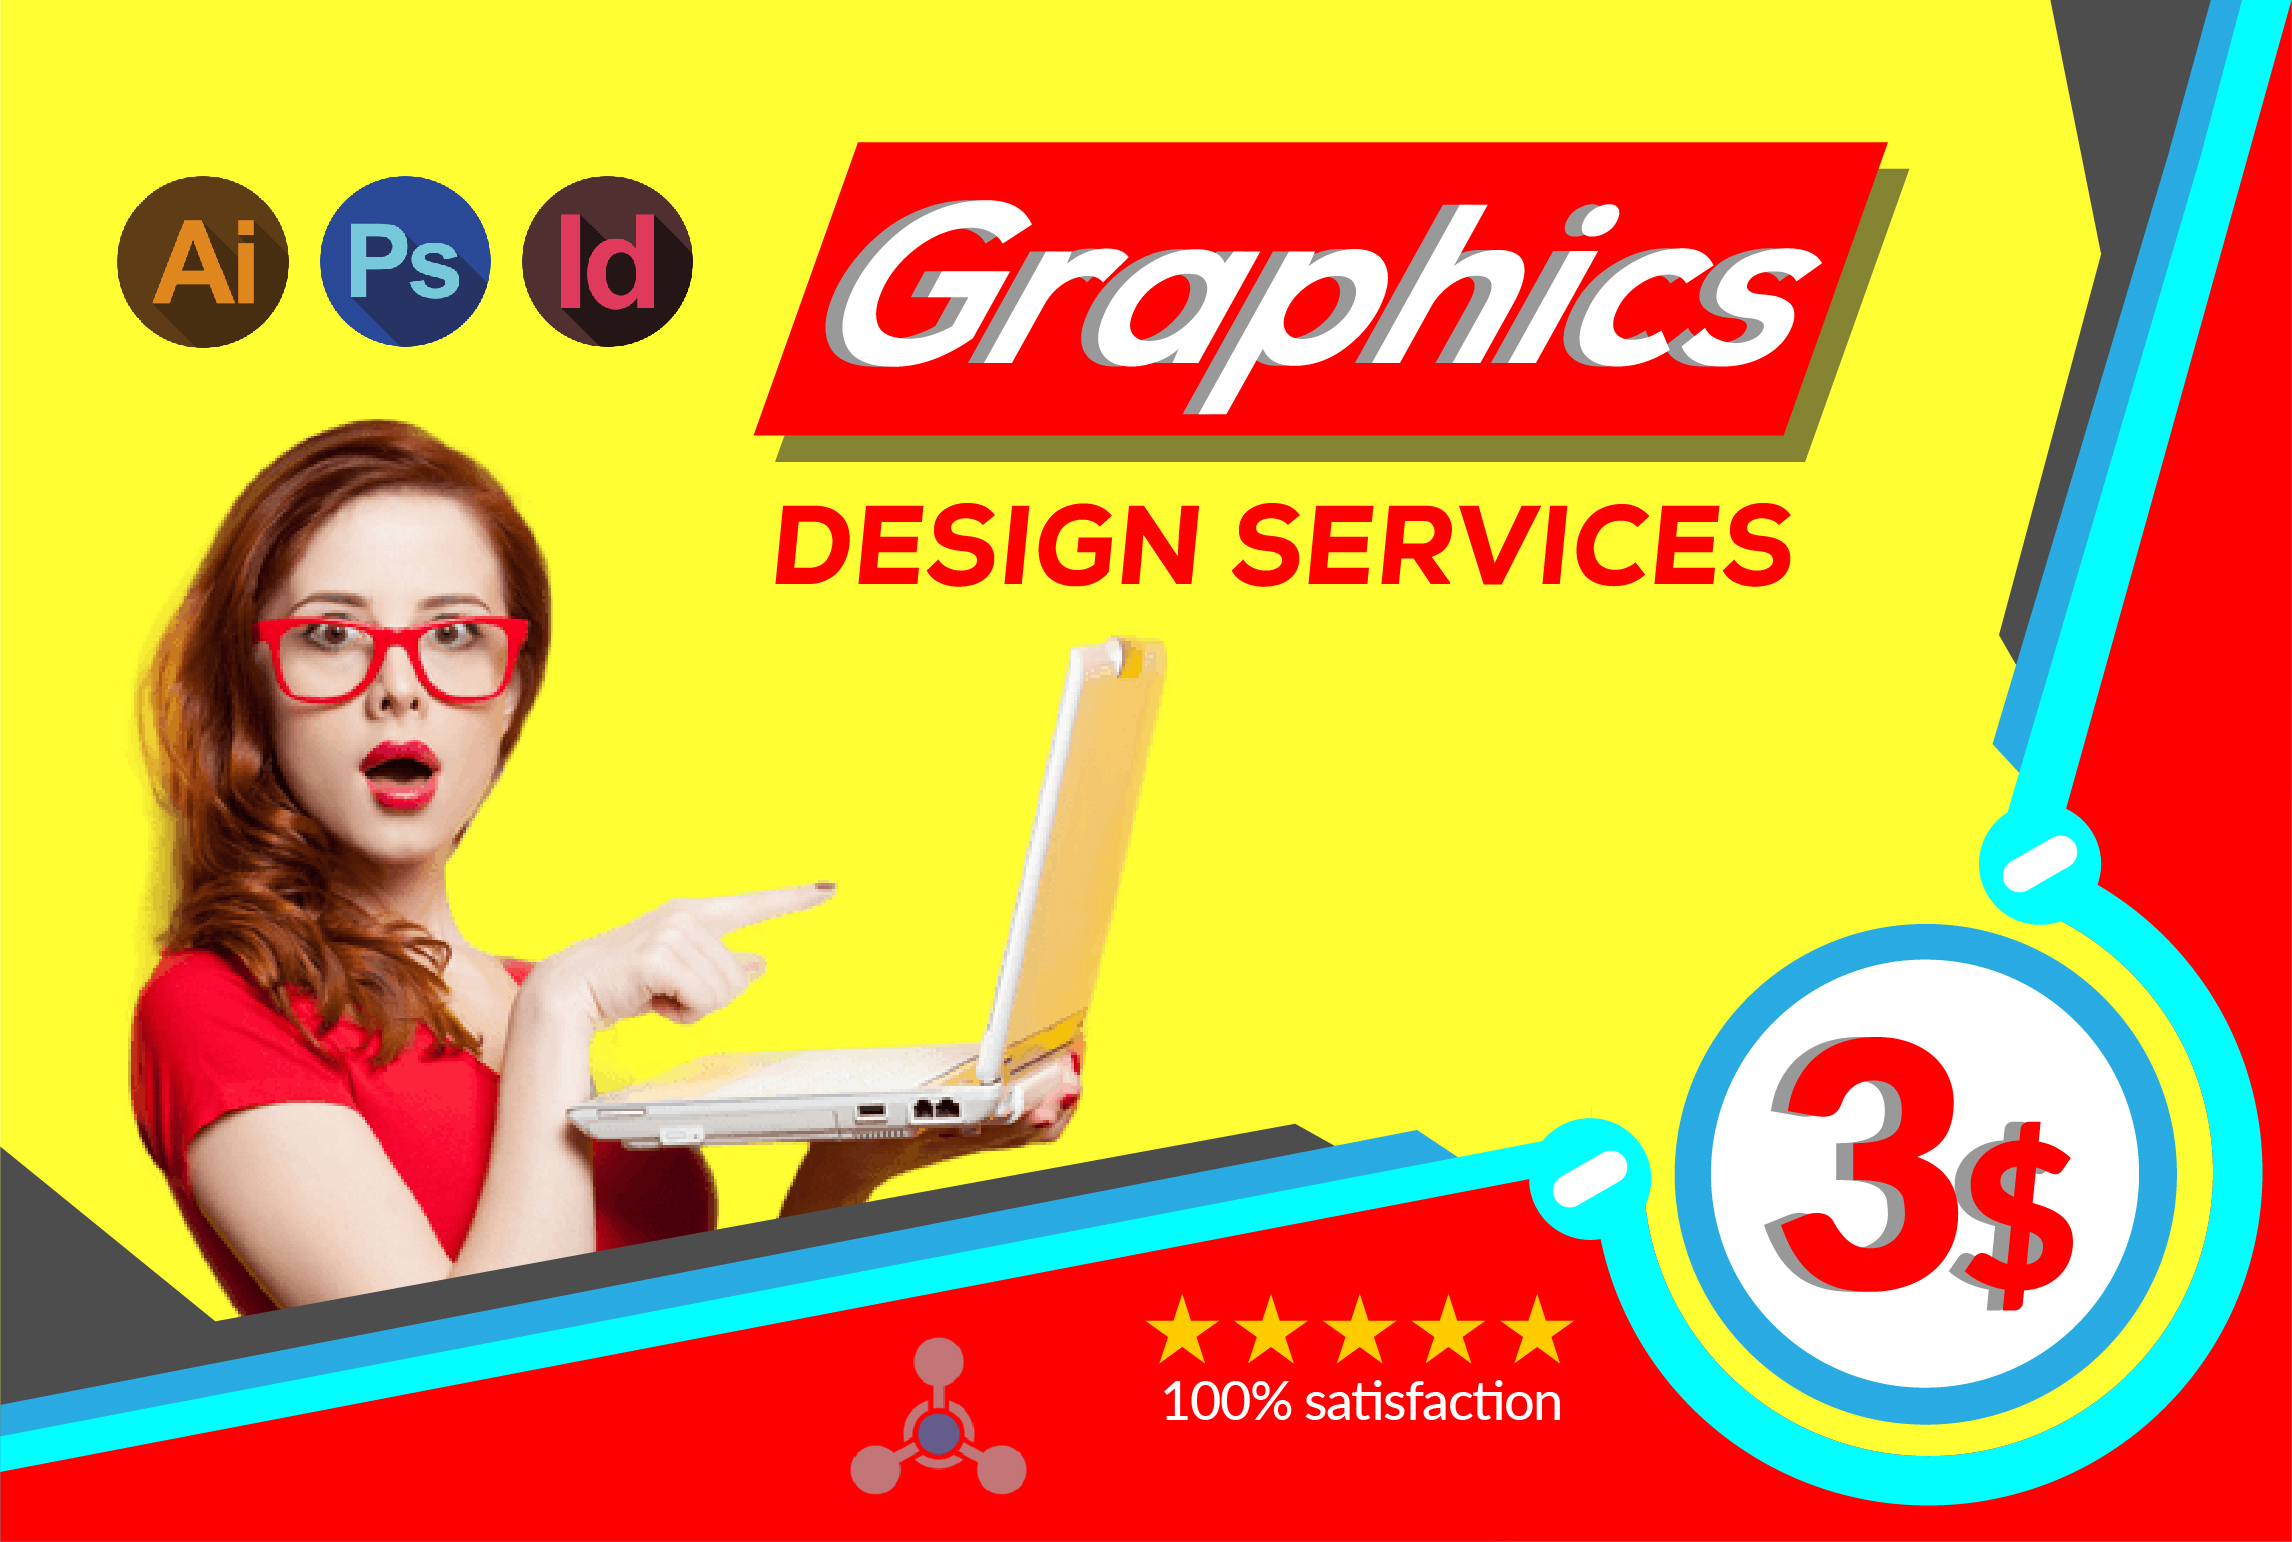 In 3 hours do any graphics design work